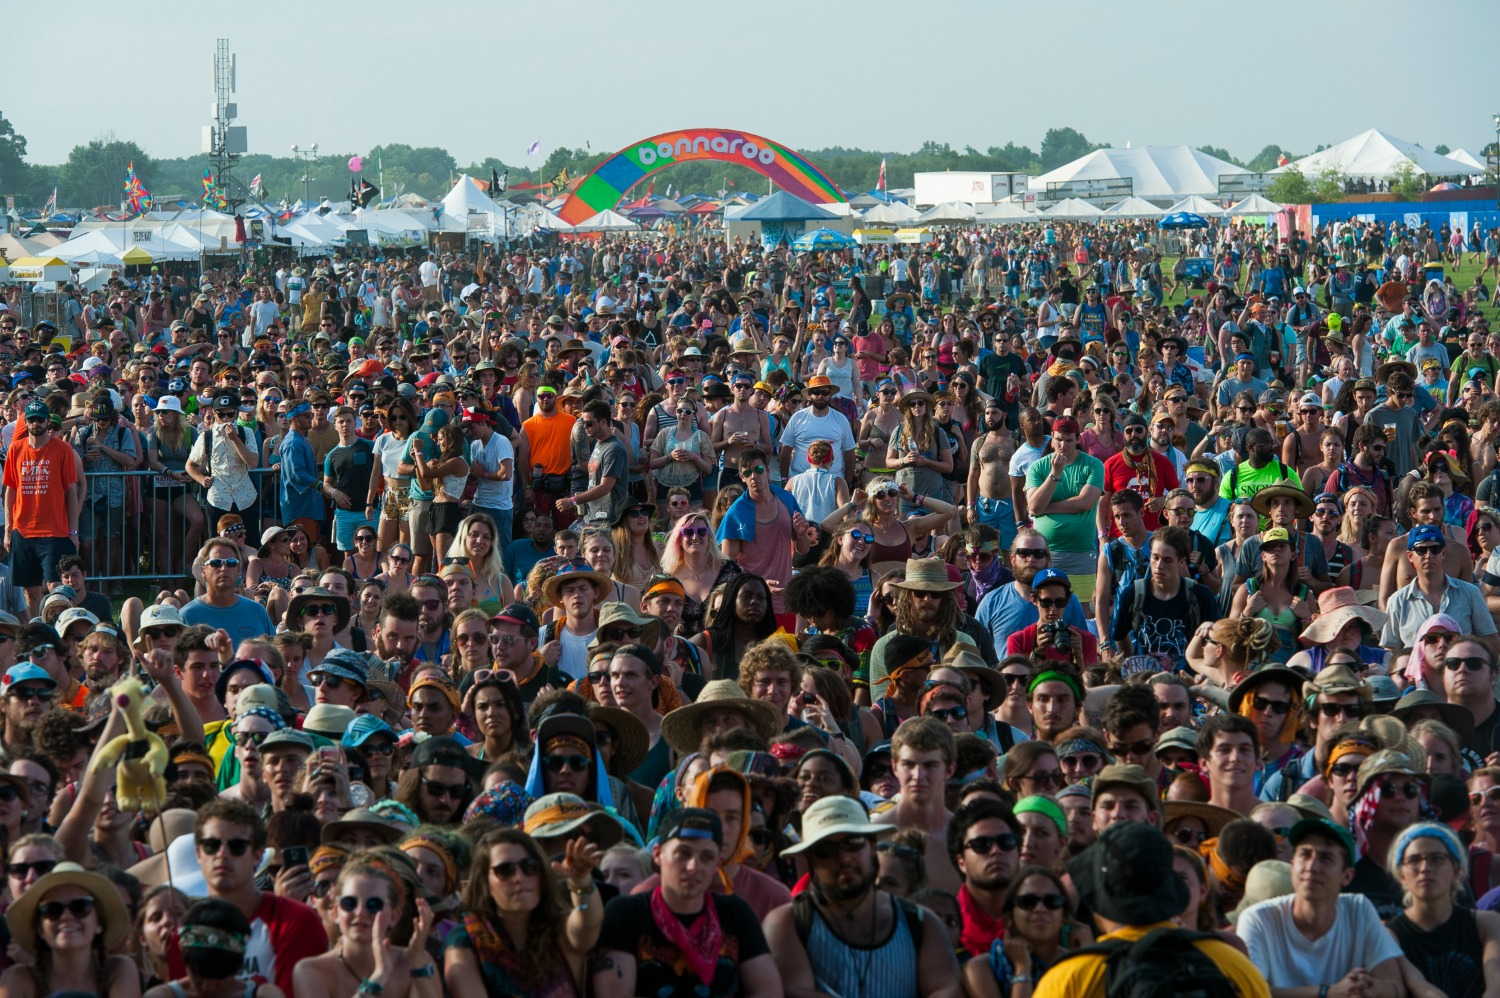 Bonnaroo Music and Arts Festival | Photo by Adam Macchia for Bonnaroo Music & Arts Festival